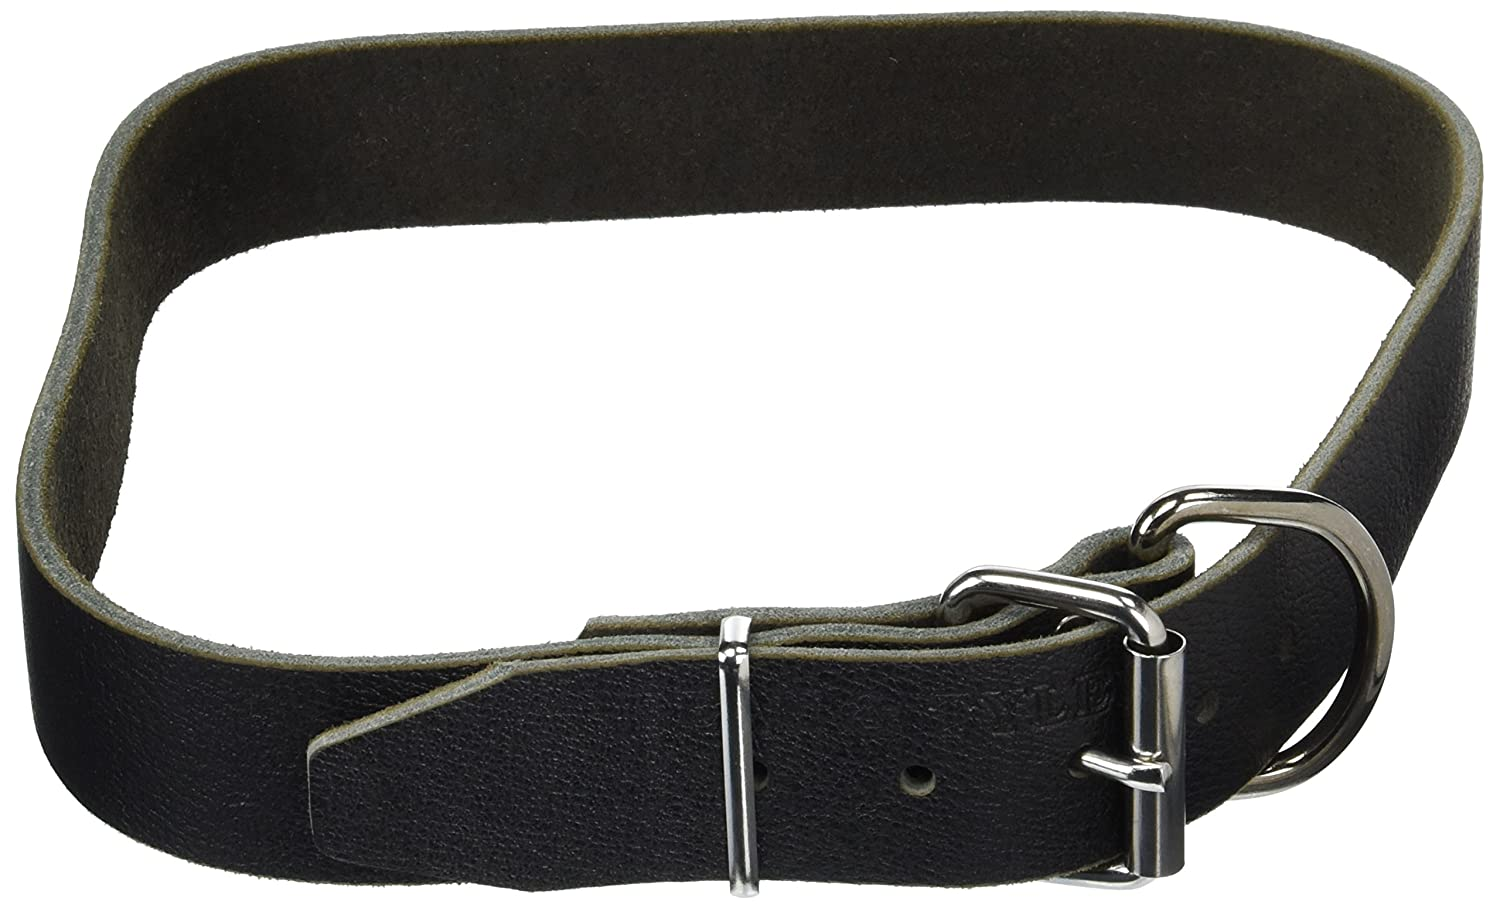 Dean and Tyler B and B , Basic Leather Dog Collar with Strong Nickel Hardware  Black  Size 34Inch by 11 2Inch  Fits Neck 32Inch to 36Inch